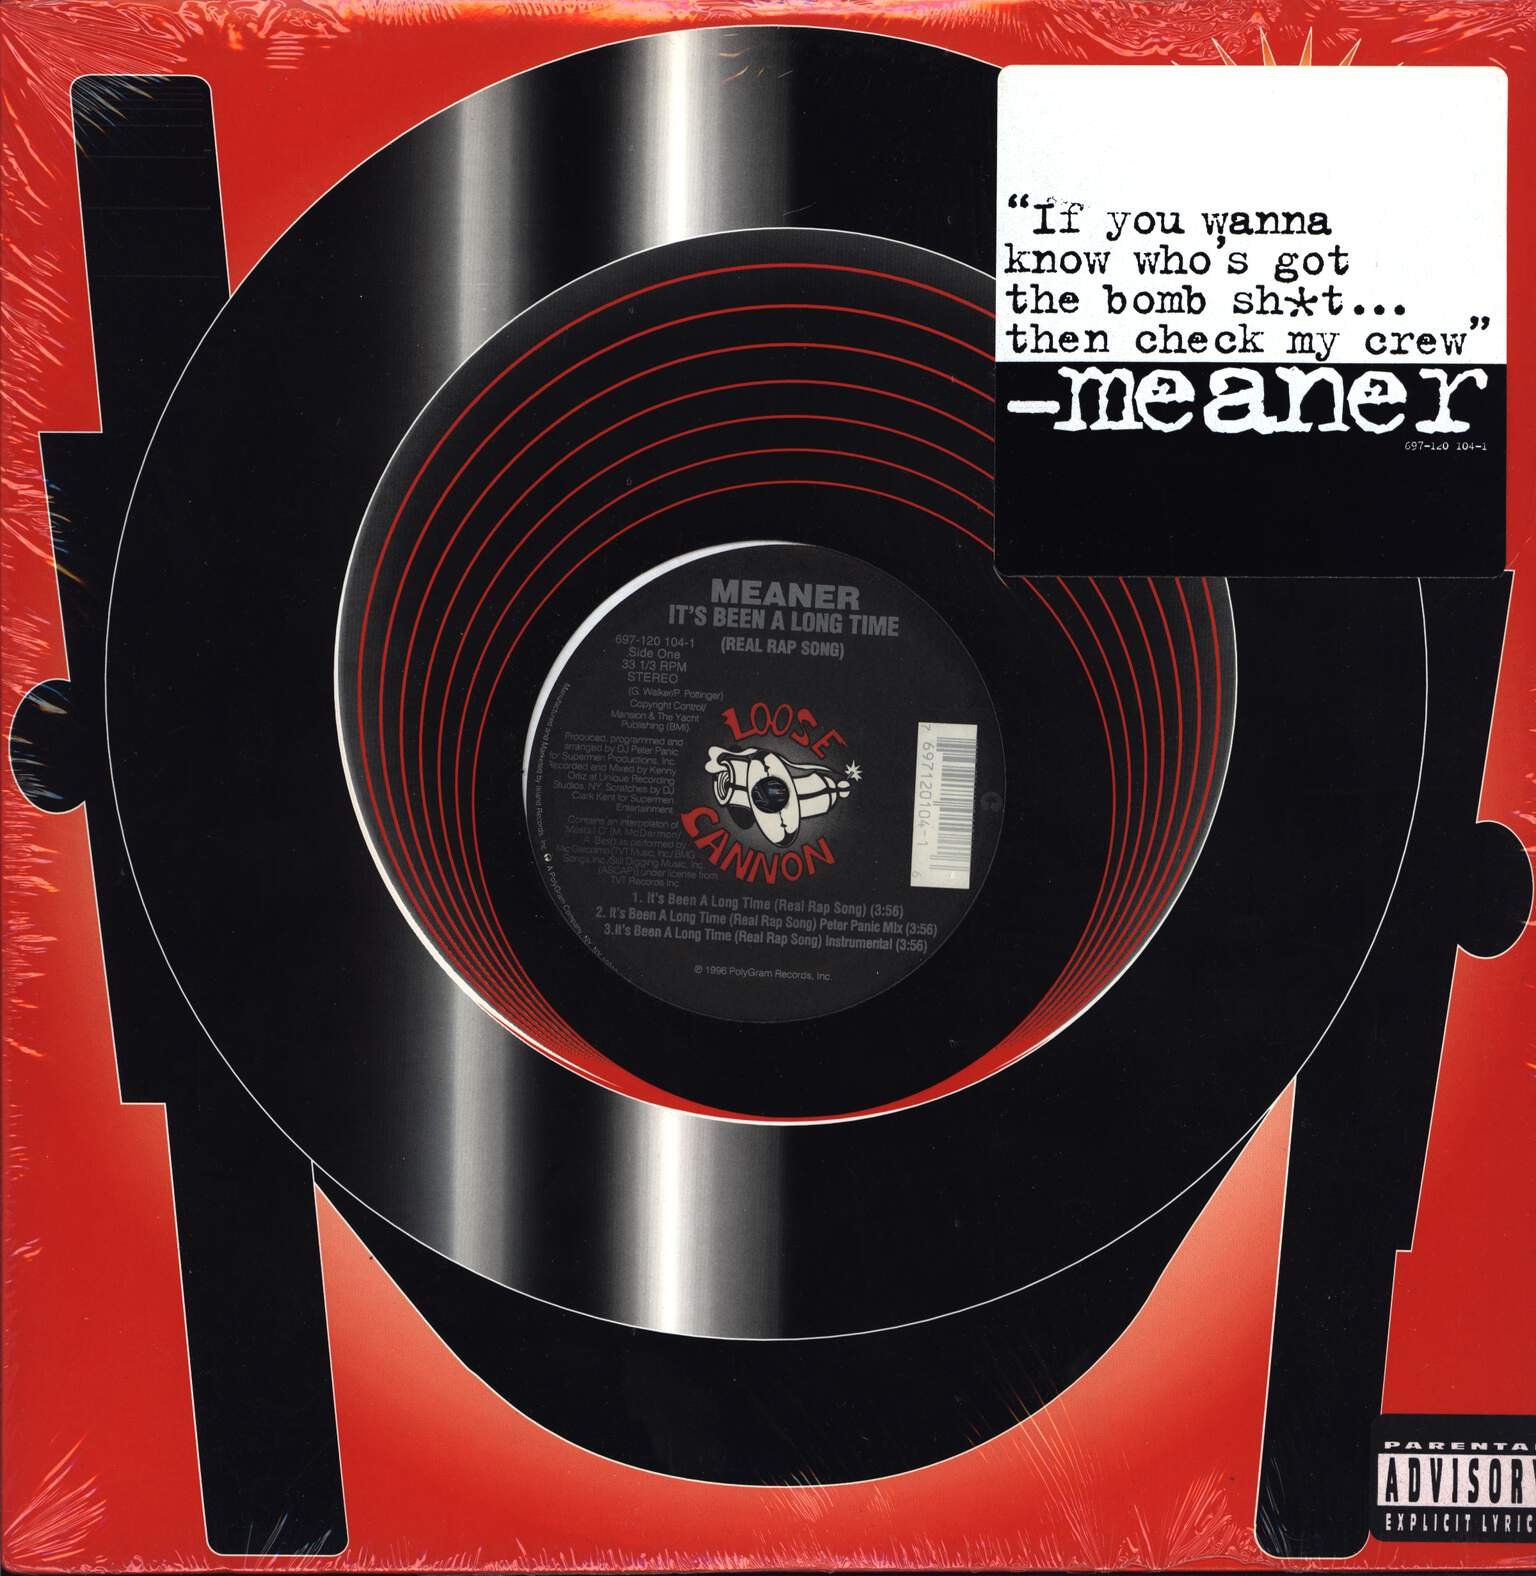 "Meaner: It's Been A Long Time (Real Rap Song) / How We Do, 12"" Maxi Single (Vinyl)"